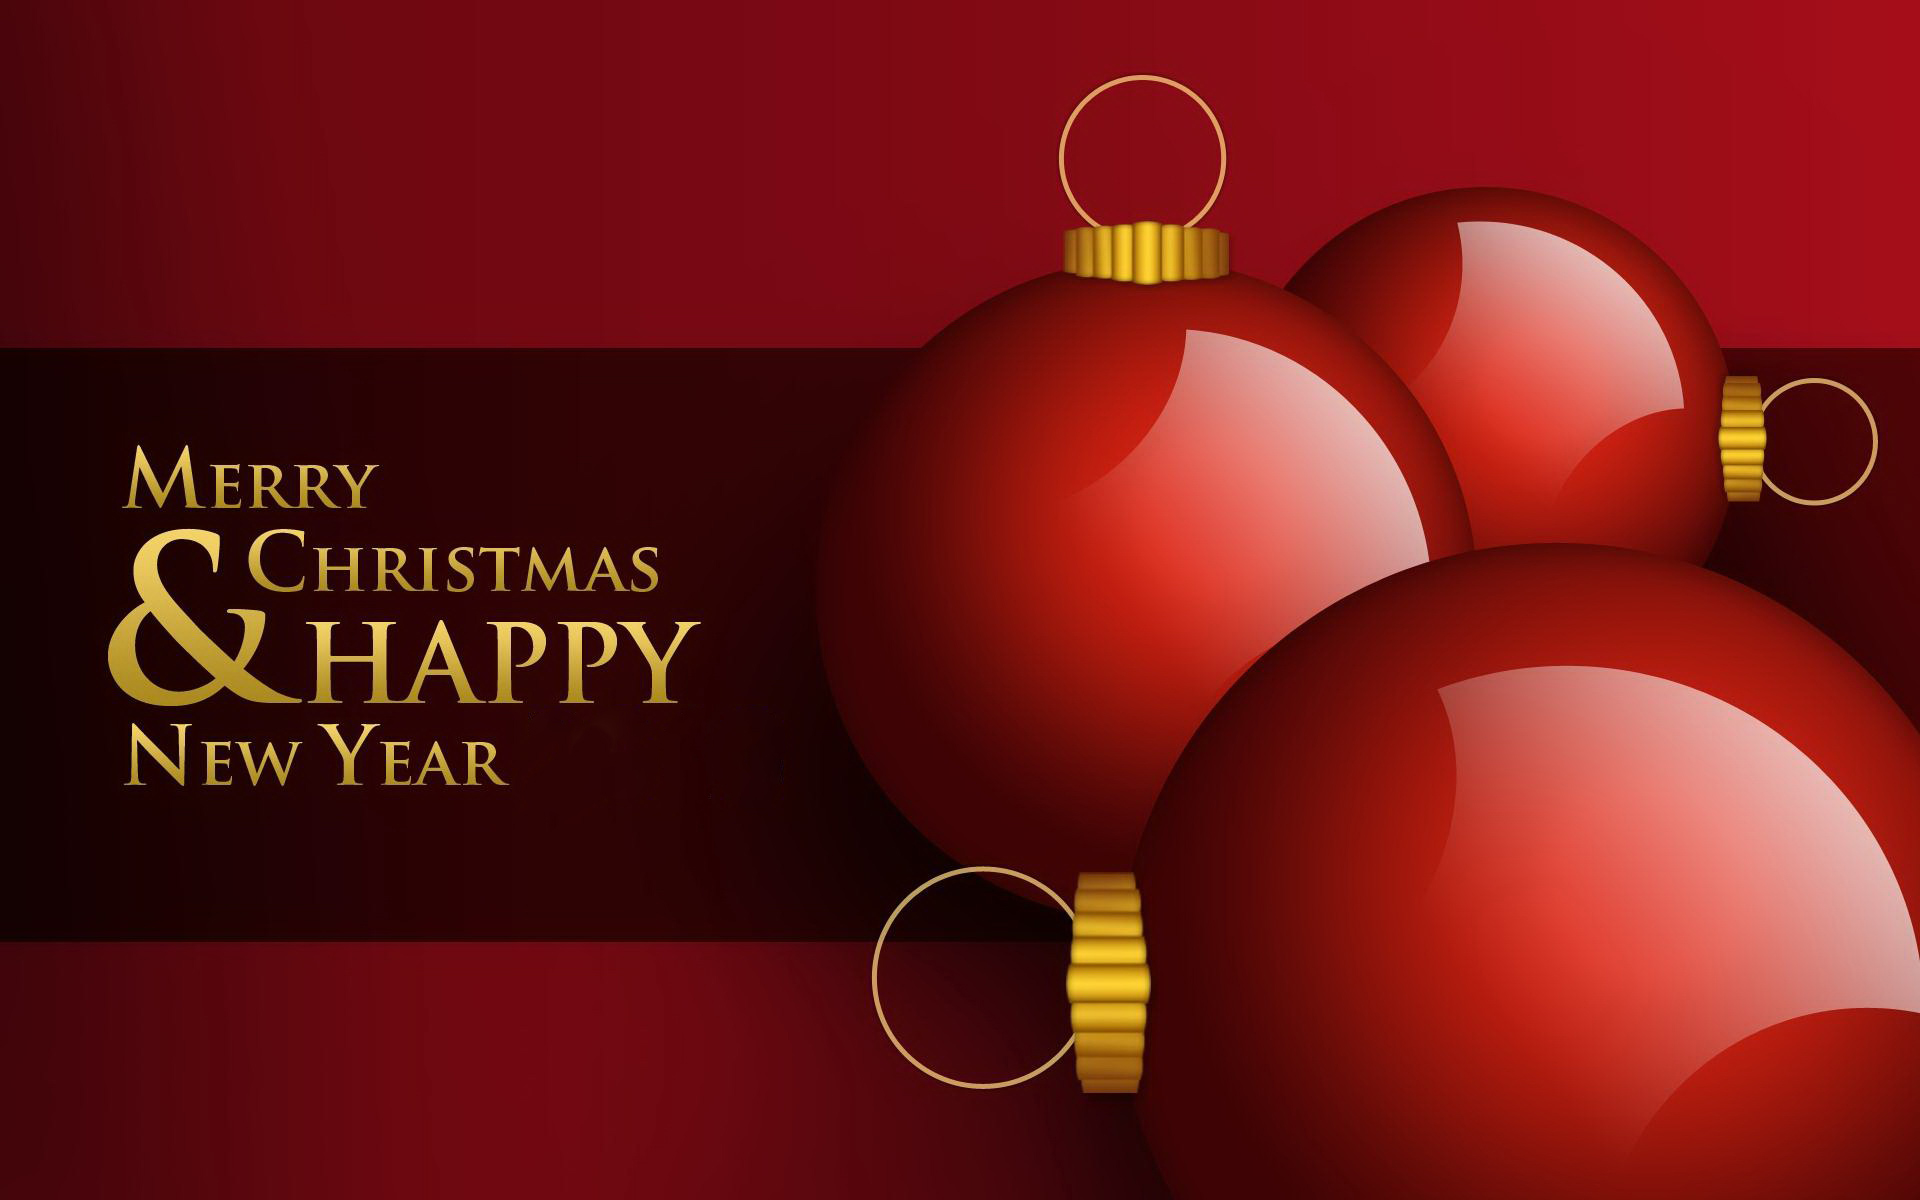 merry christmas and happy new year clipart funny